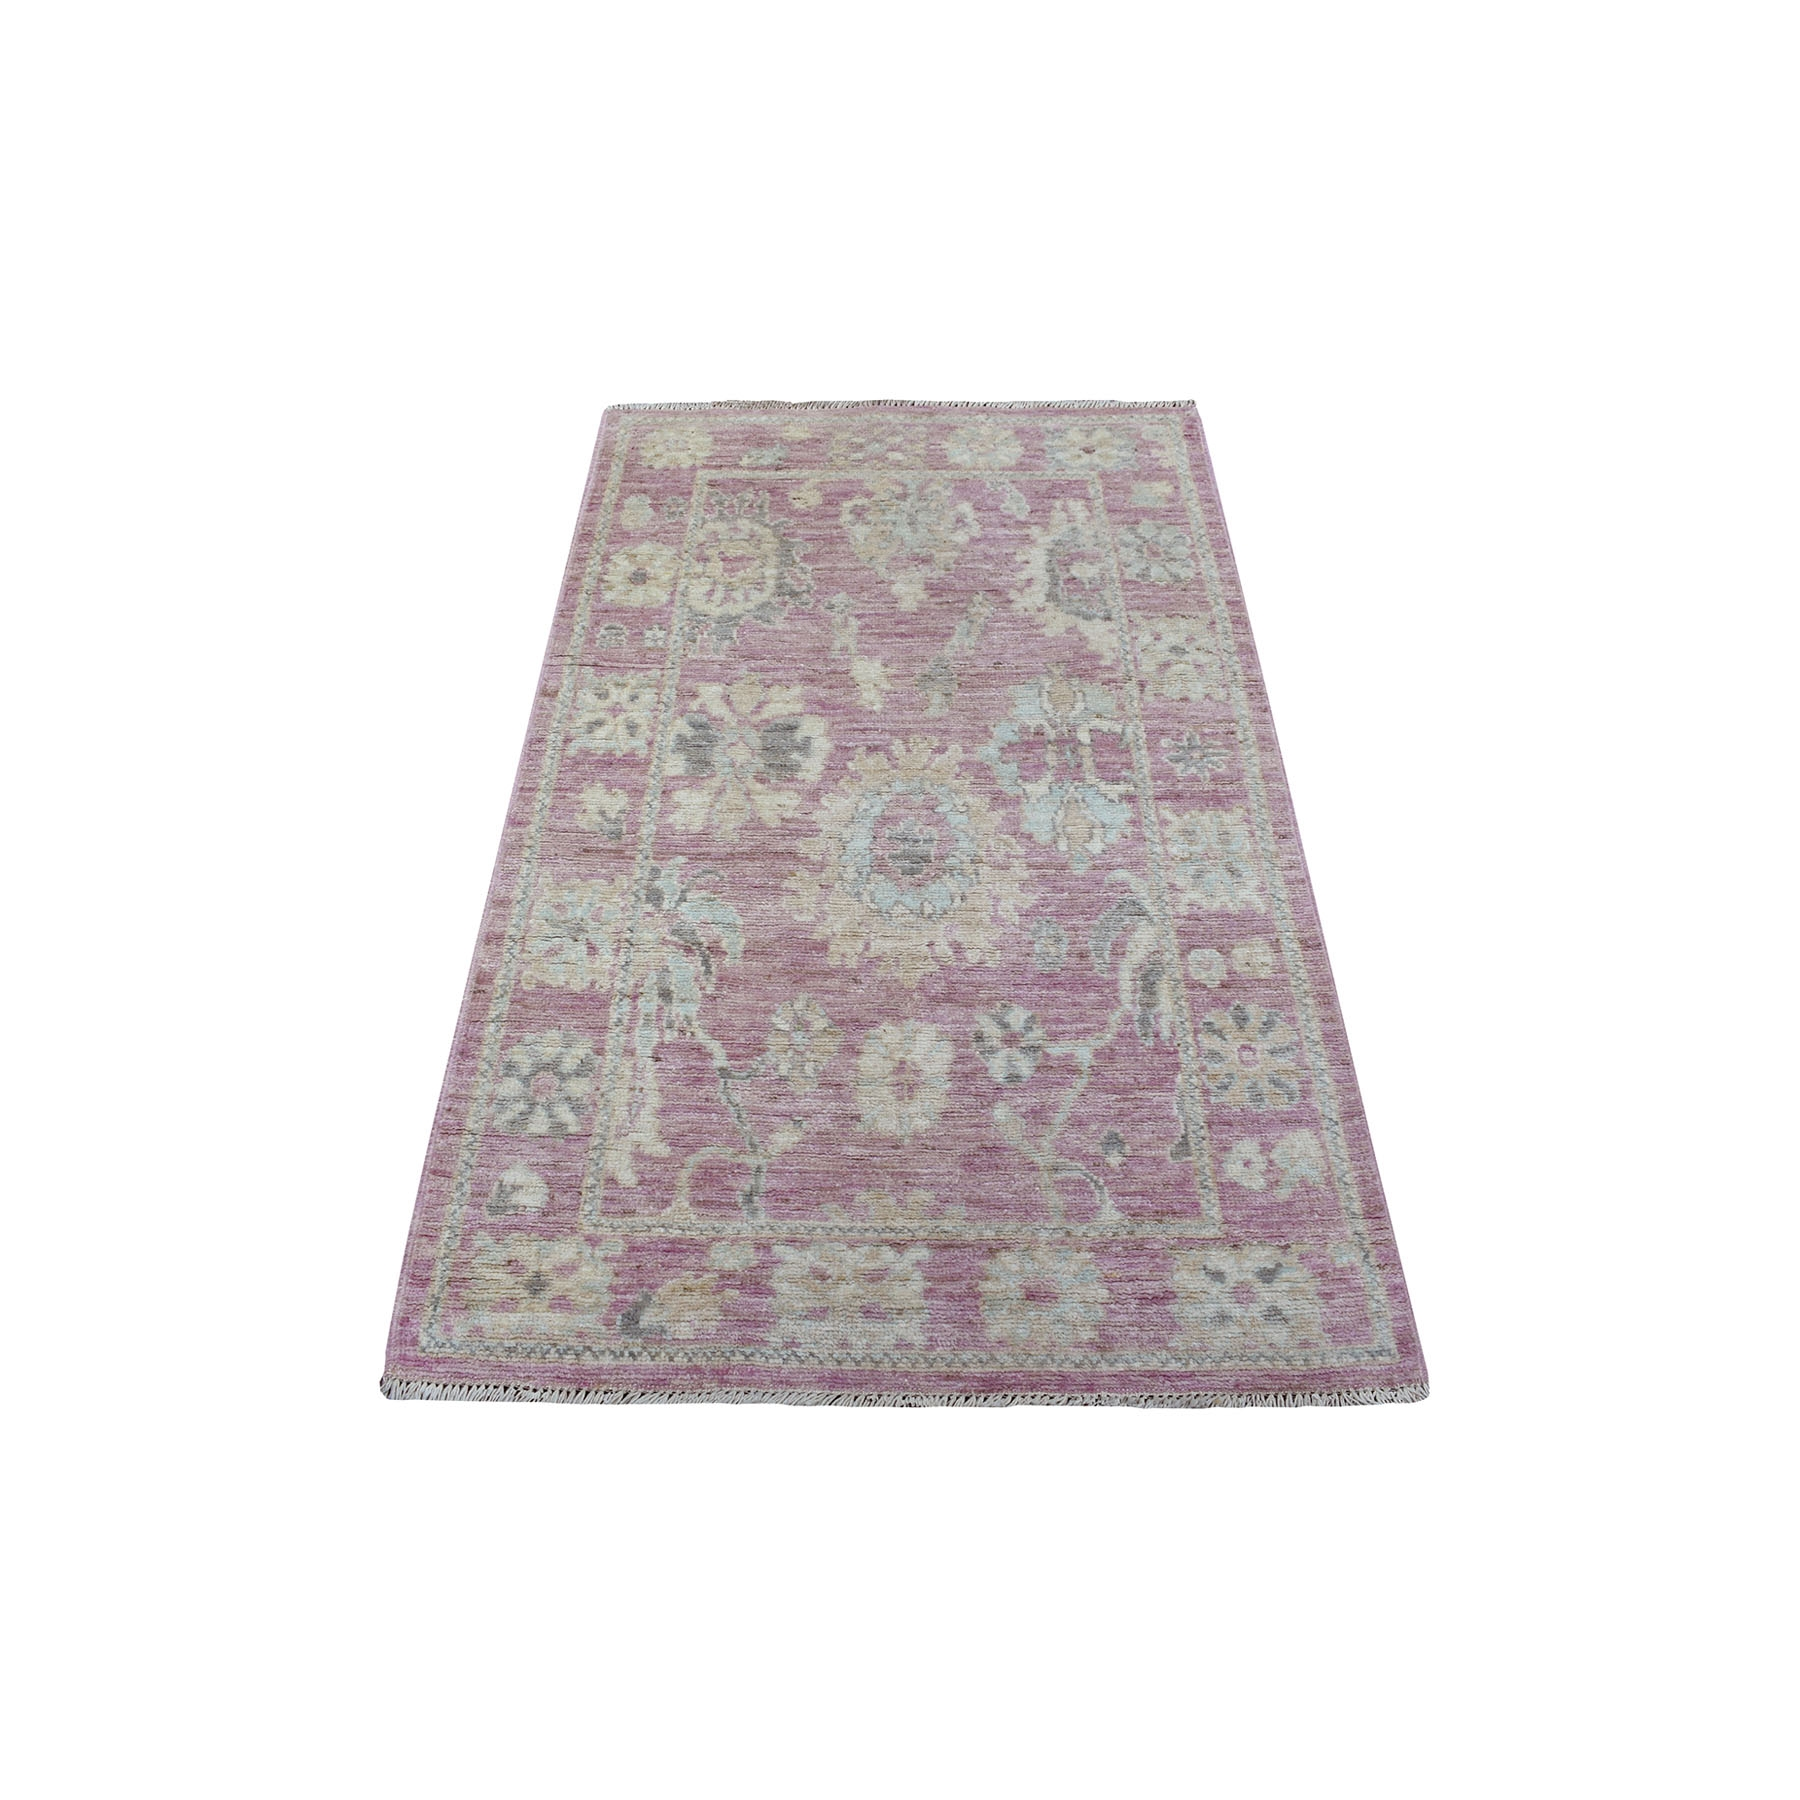 Agra And Turkish Collection Hand Knotted Pink Rug No: 1135730